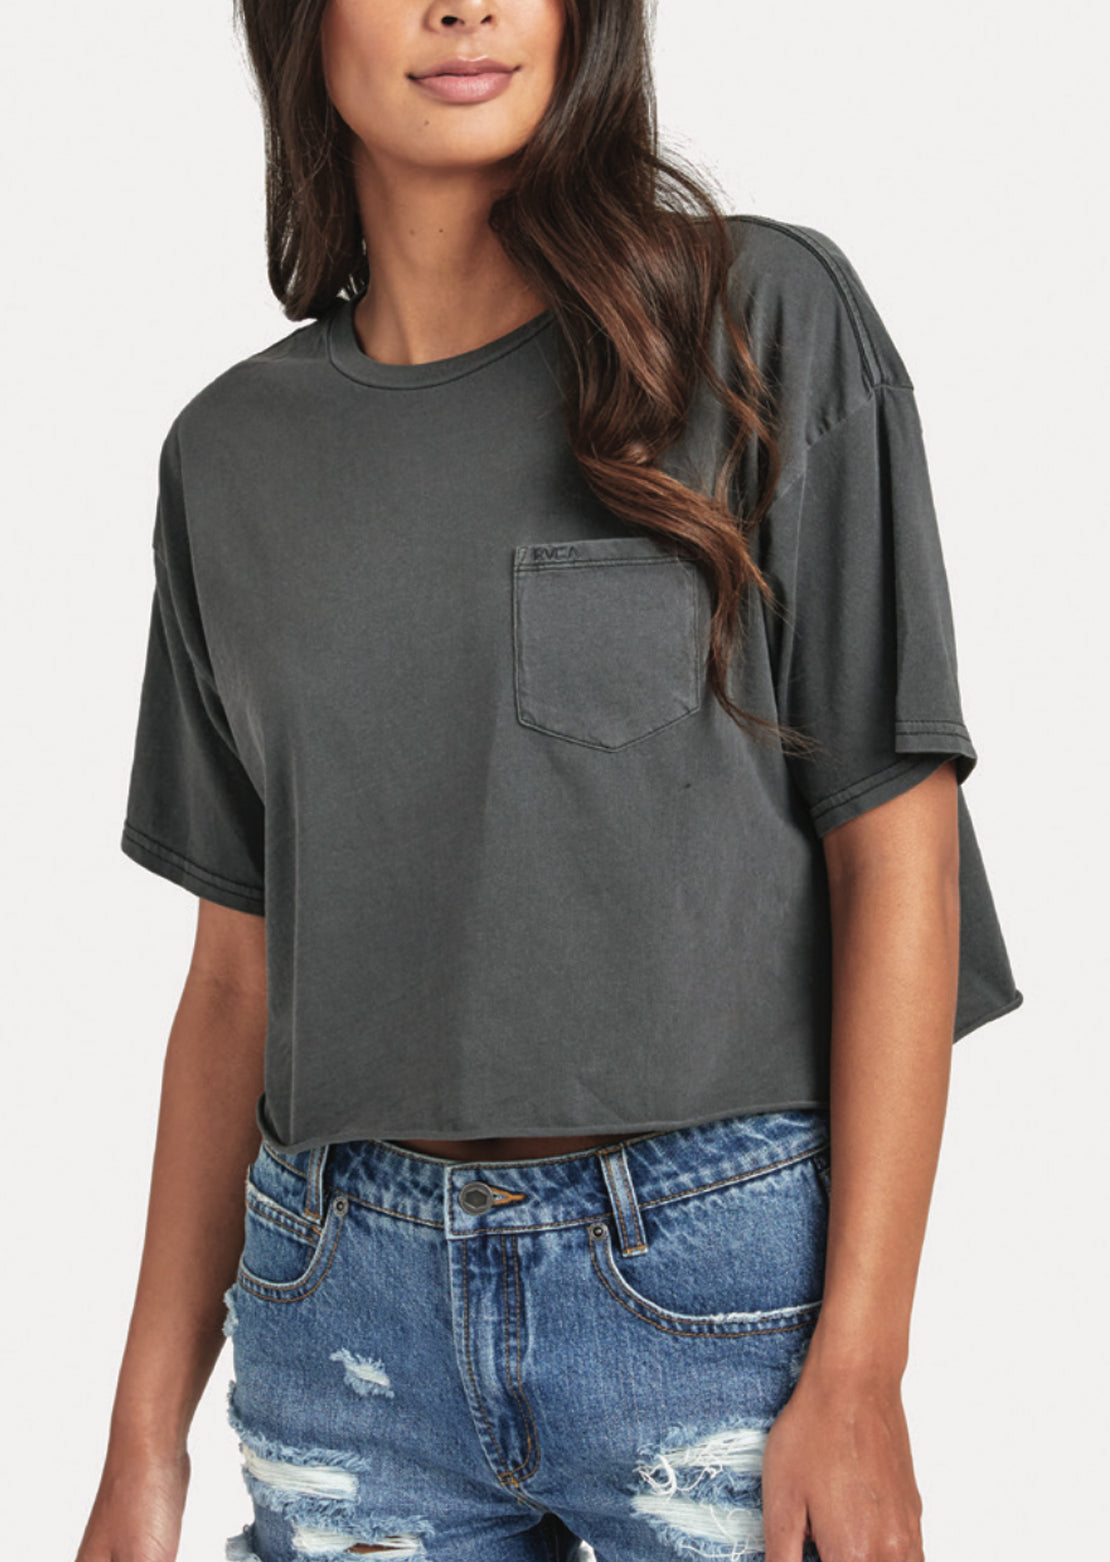 RVCA Women's PTC Boyfriend Crop Tee Pirate Black